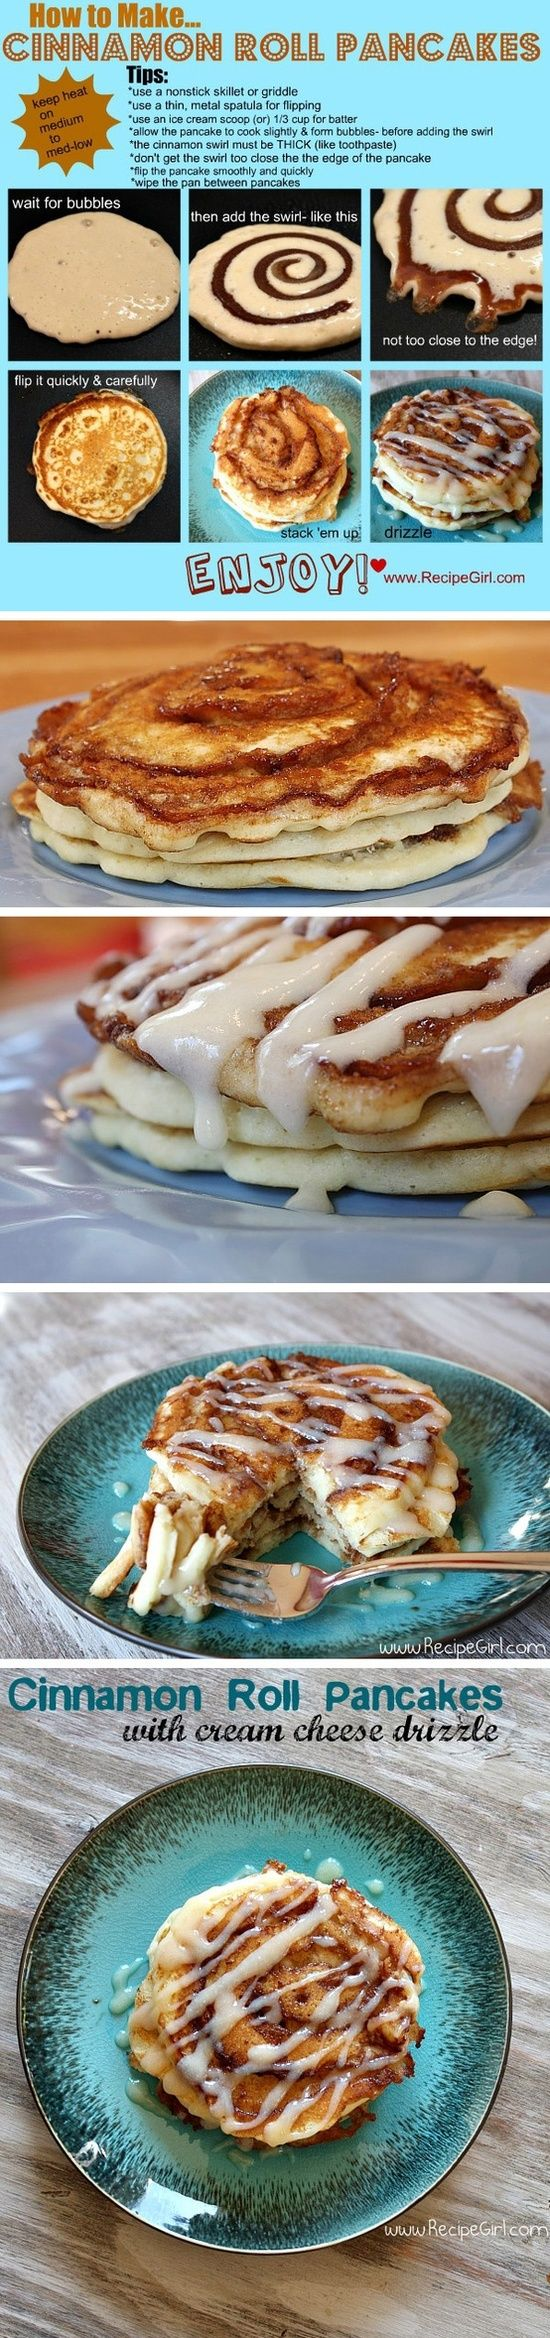 Add cinnamon swirl to pancakes - now I just need to figure out what cinnamon swirl is??